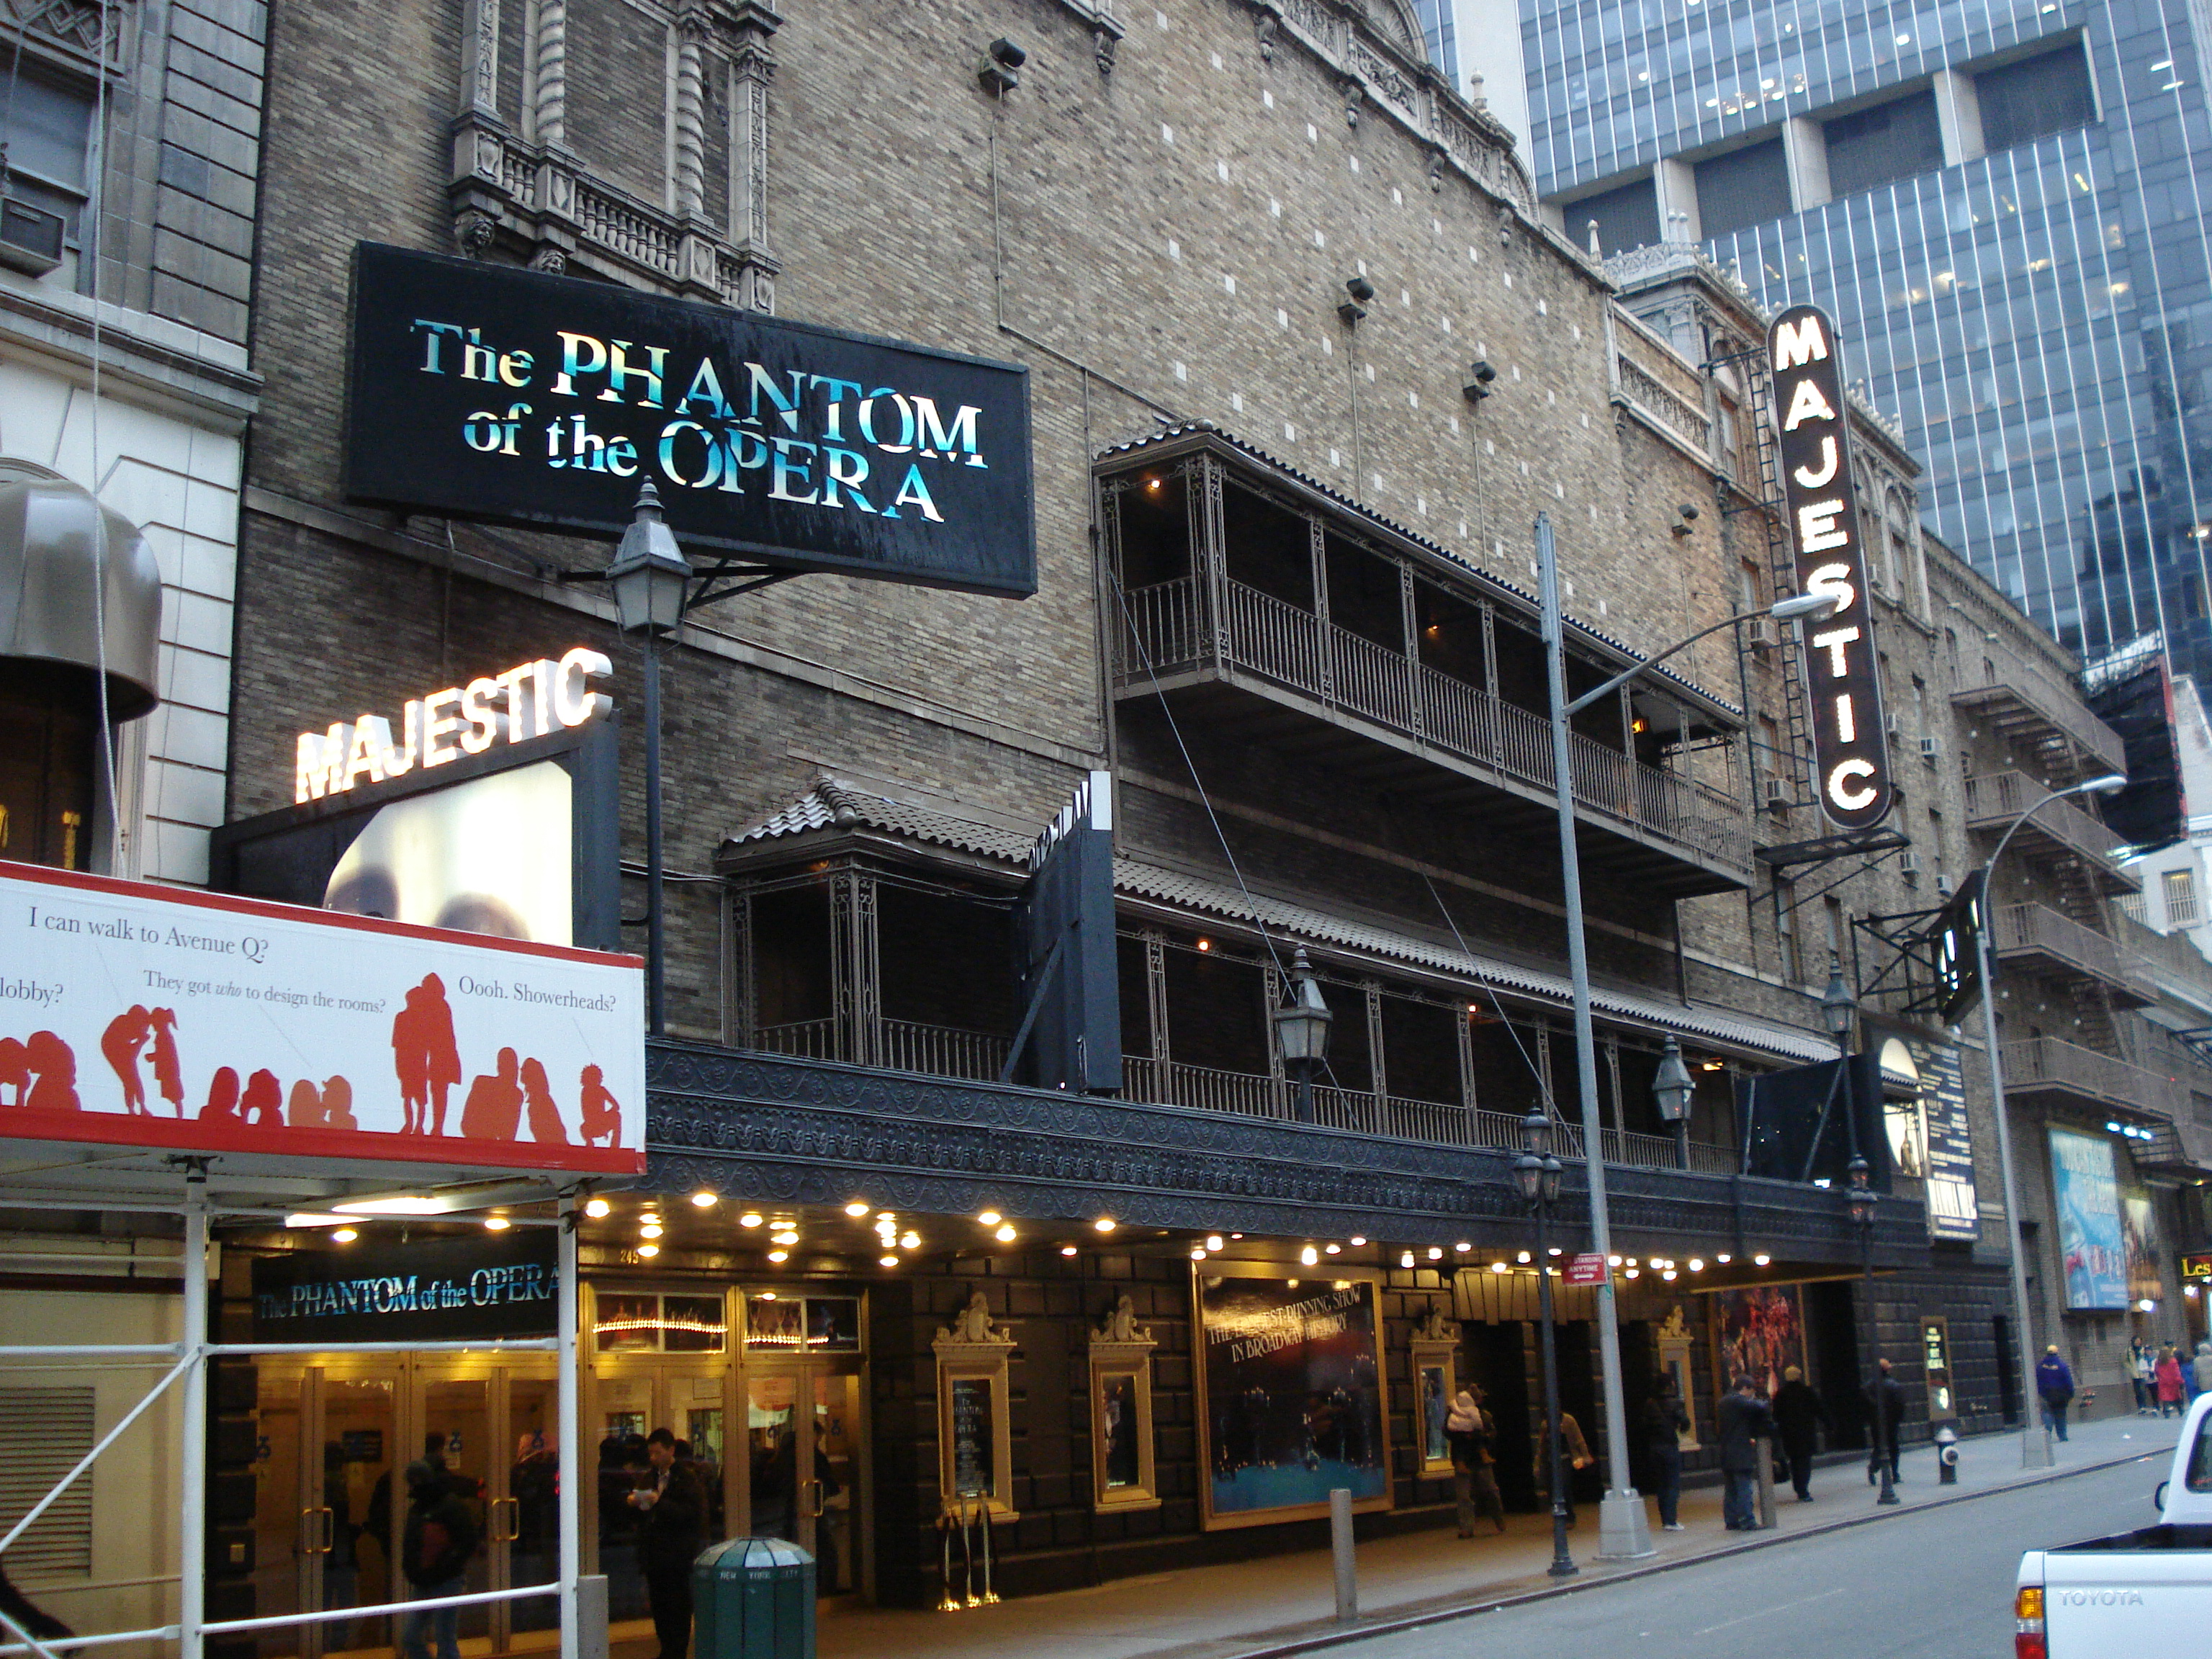 https://upload.wikimedia.org/wikipedia/commons/3/36/Majestic_Theatre.jpg